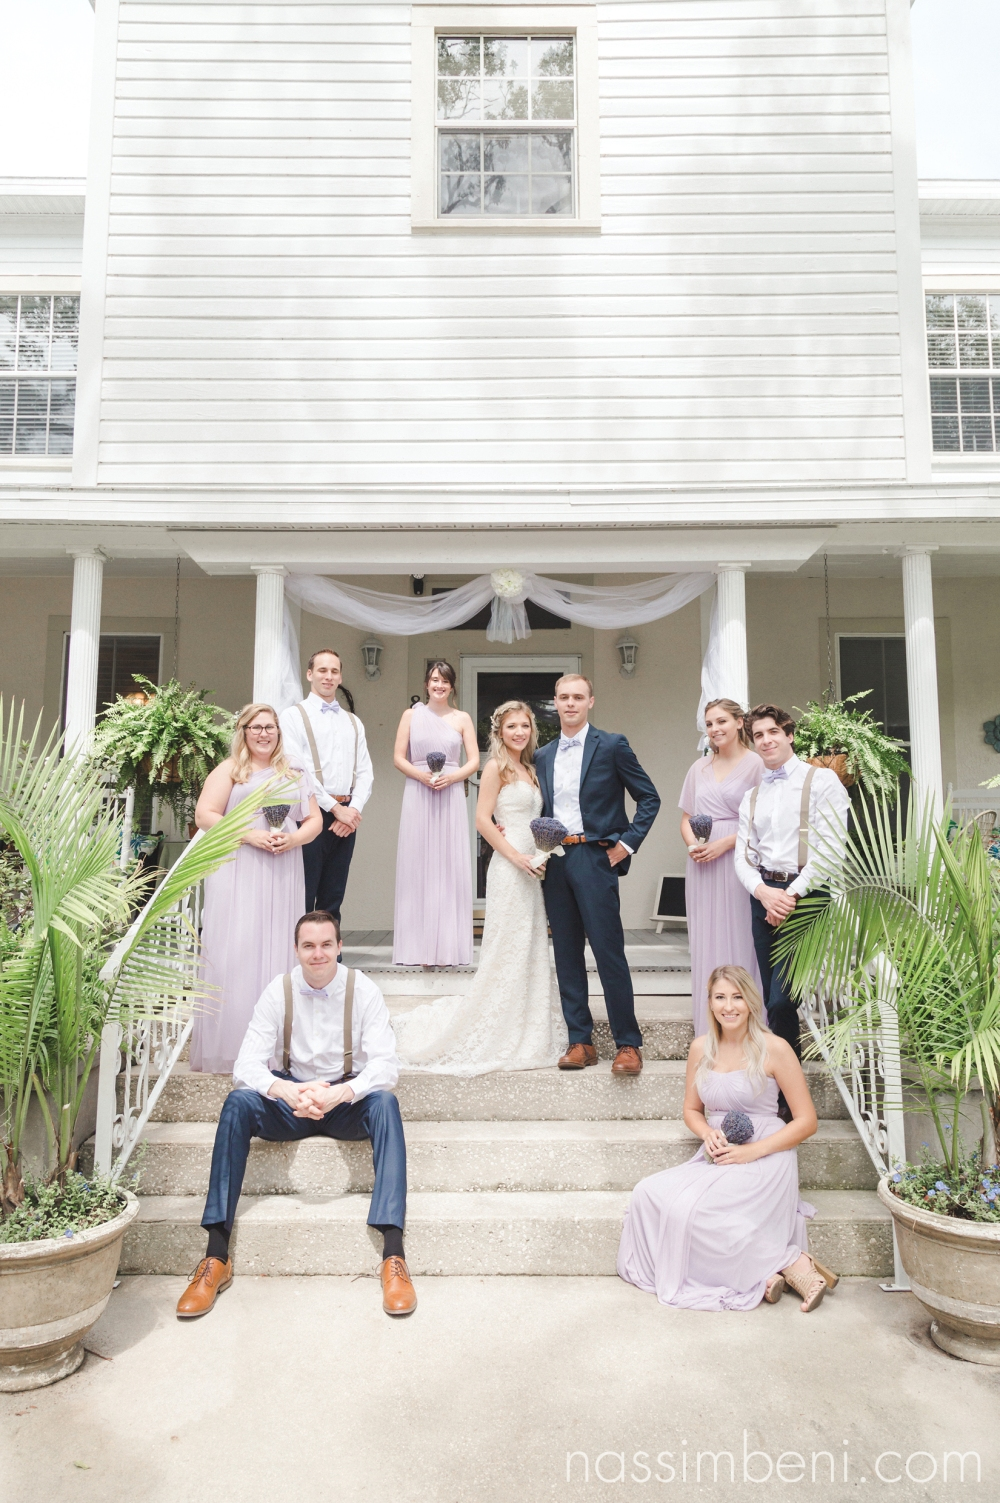 backyard-florida-private-venue-wedding-nassimbeni-photography-47